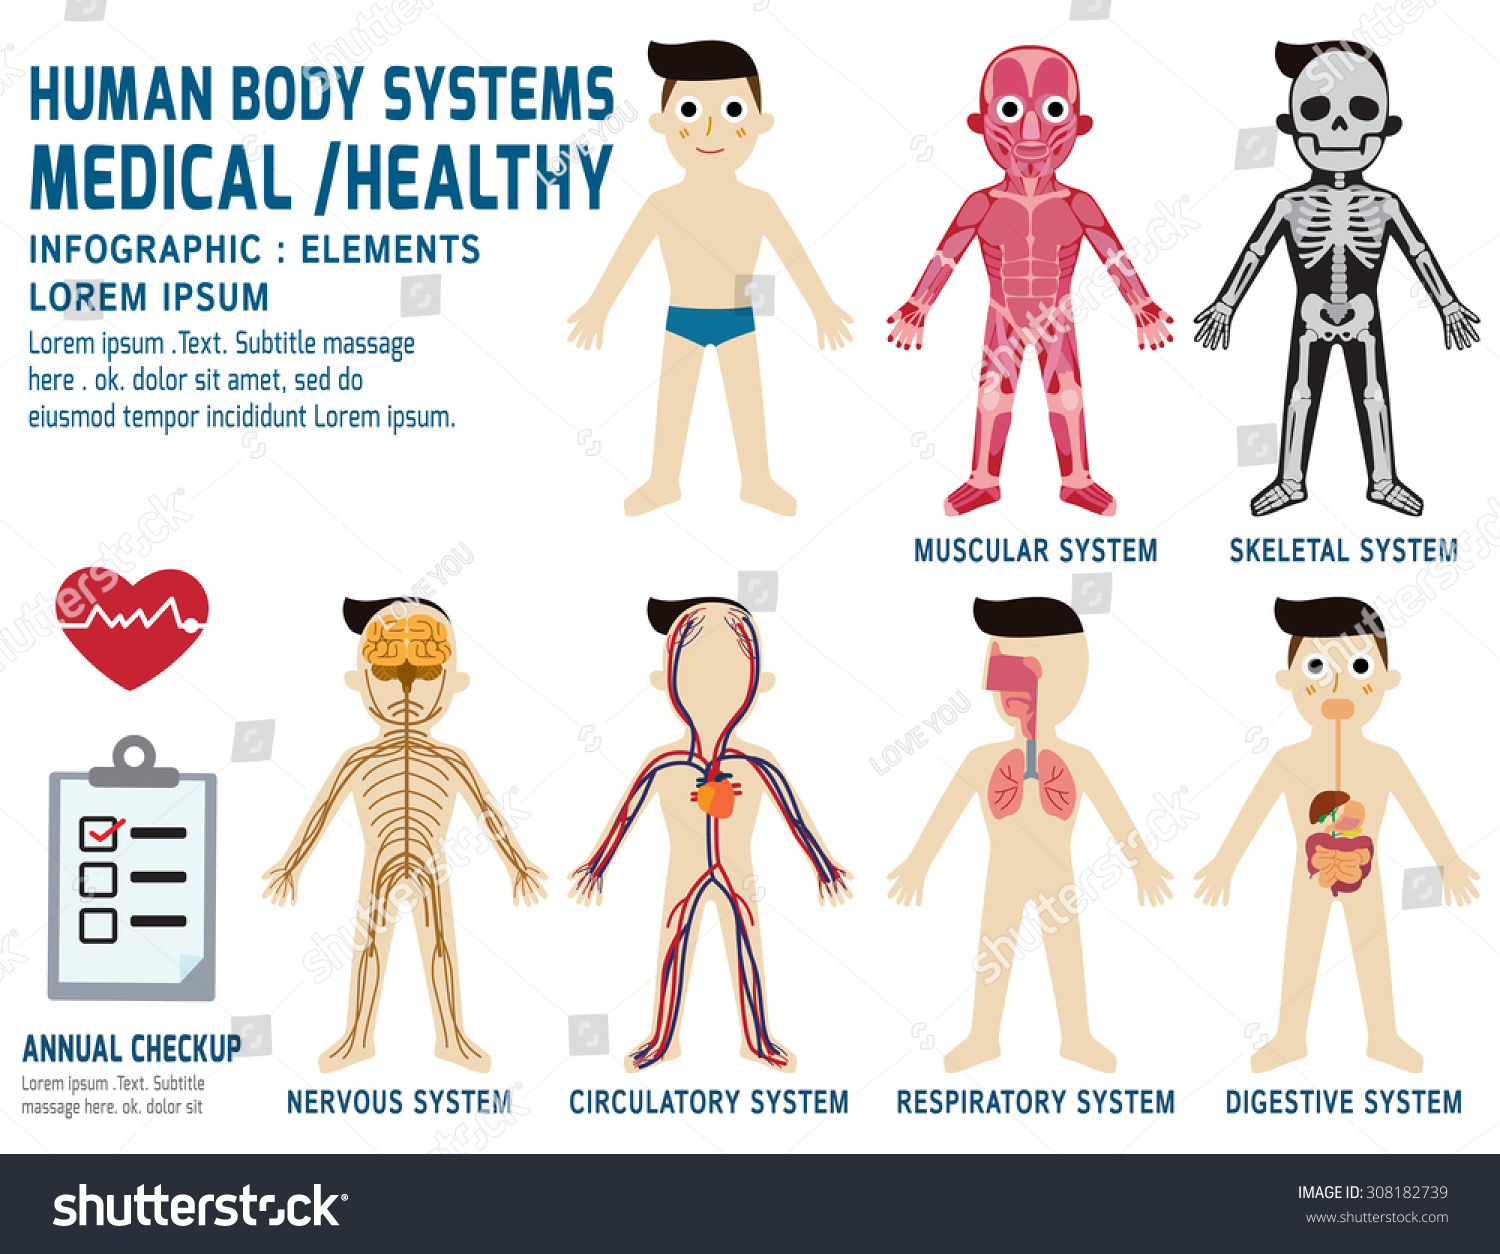 Human Body Systems Annual Checkupanatomy Body Stock Vector 308182739 ...